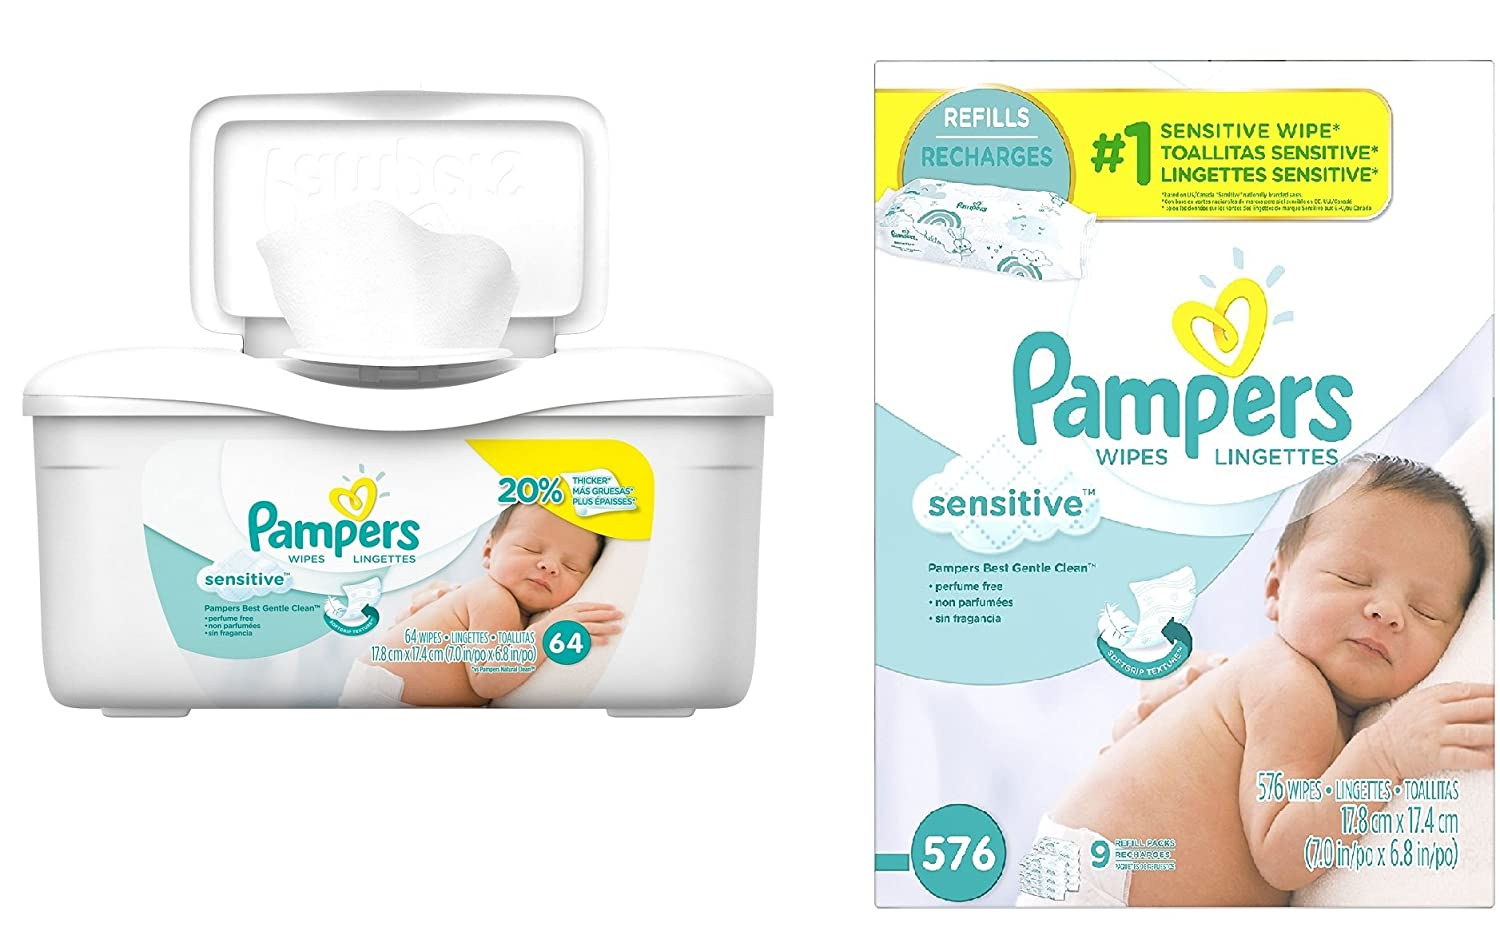 Amazon.com: Pampers Baby Wipes Tub, Sensitive - 64 Wipes/Tub (1Tub/9Refills/640 Count, Sensitive): Health & Personal Care